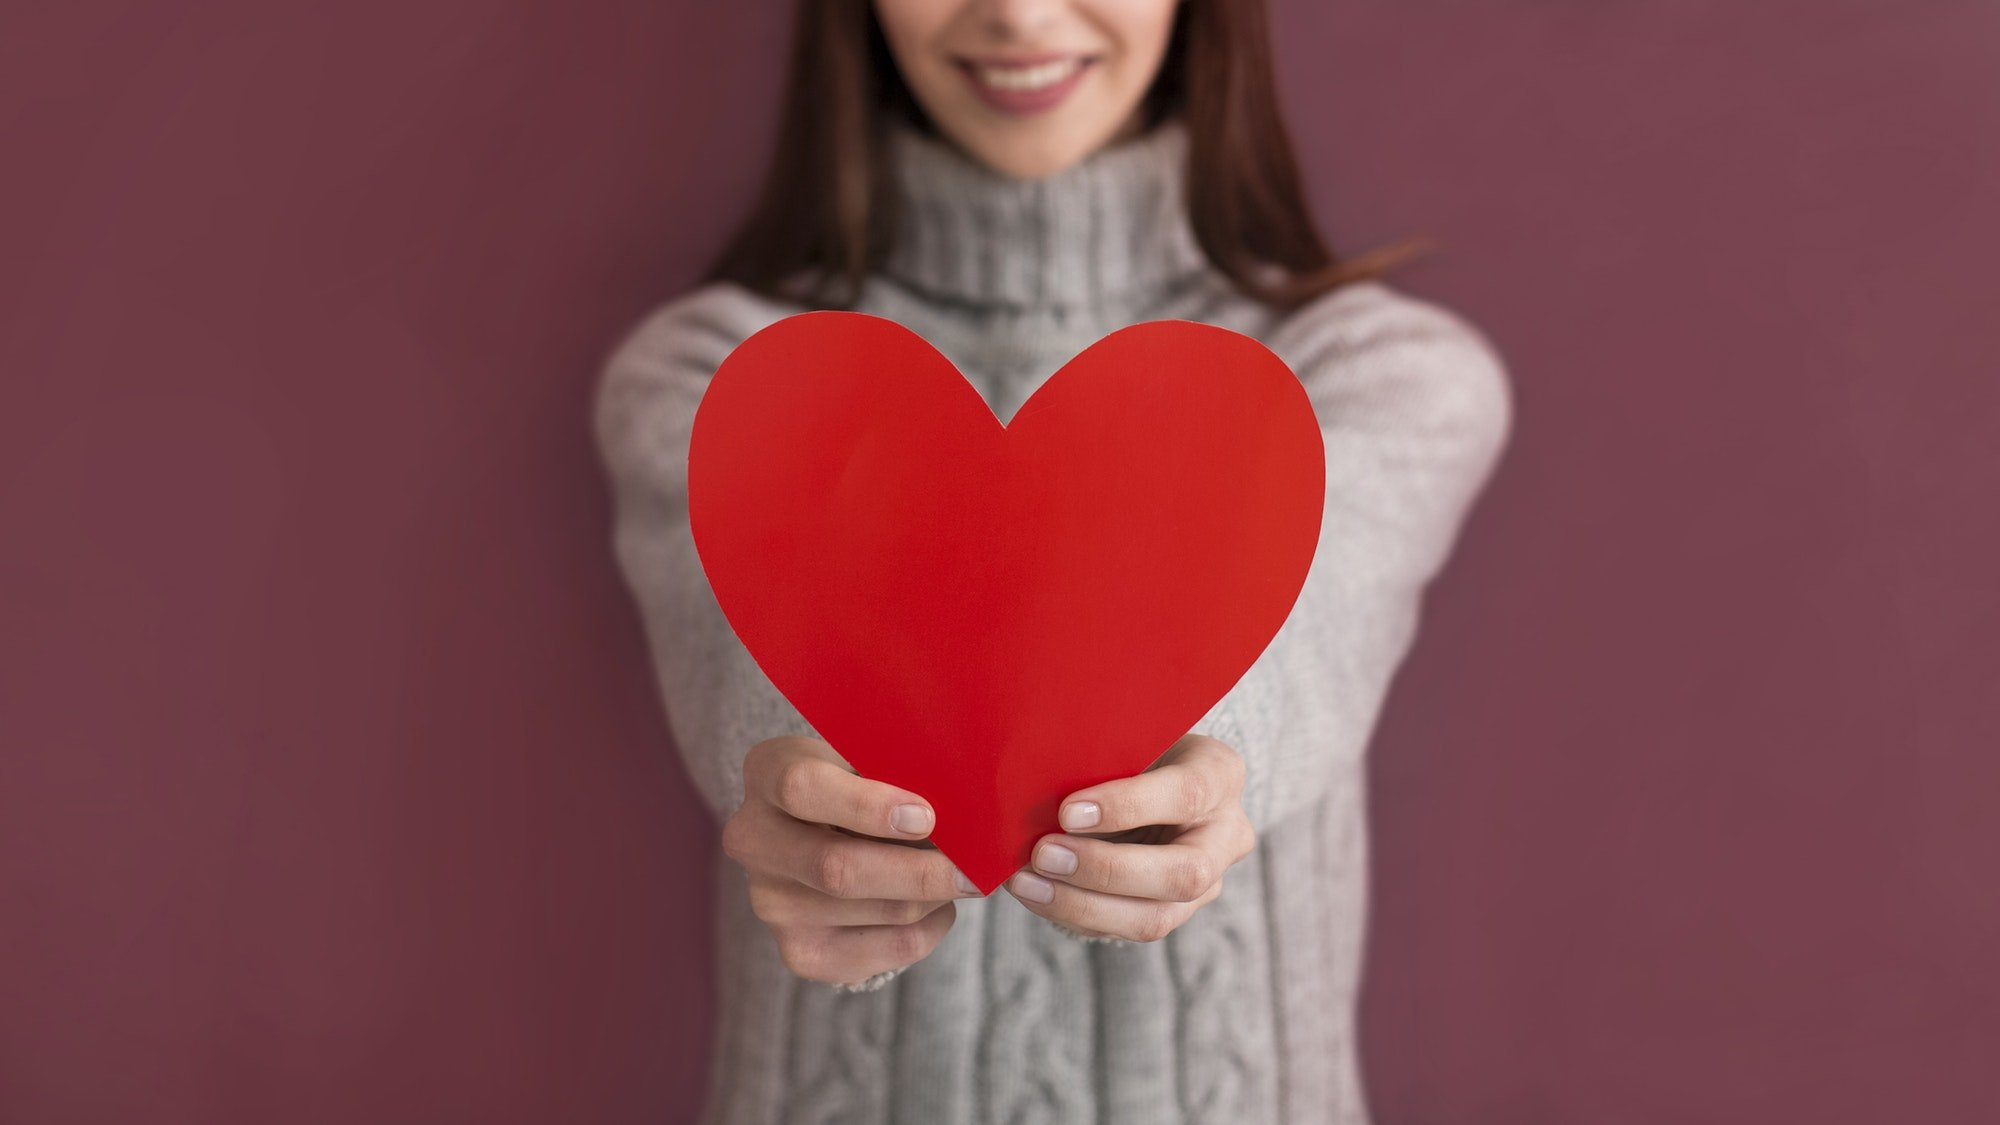 Cropped view of caucasian girl holding heart shaped card